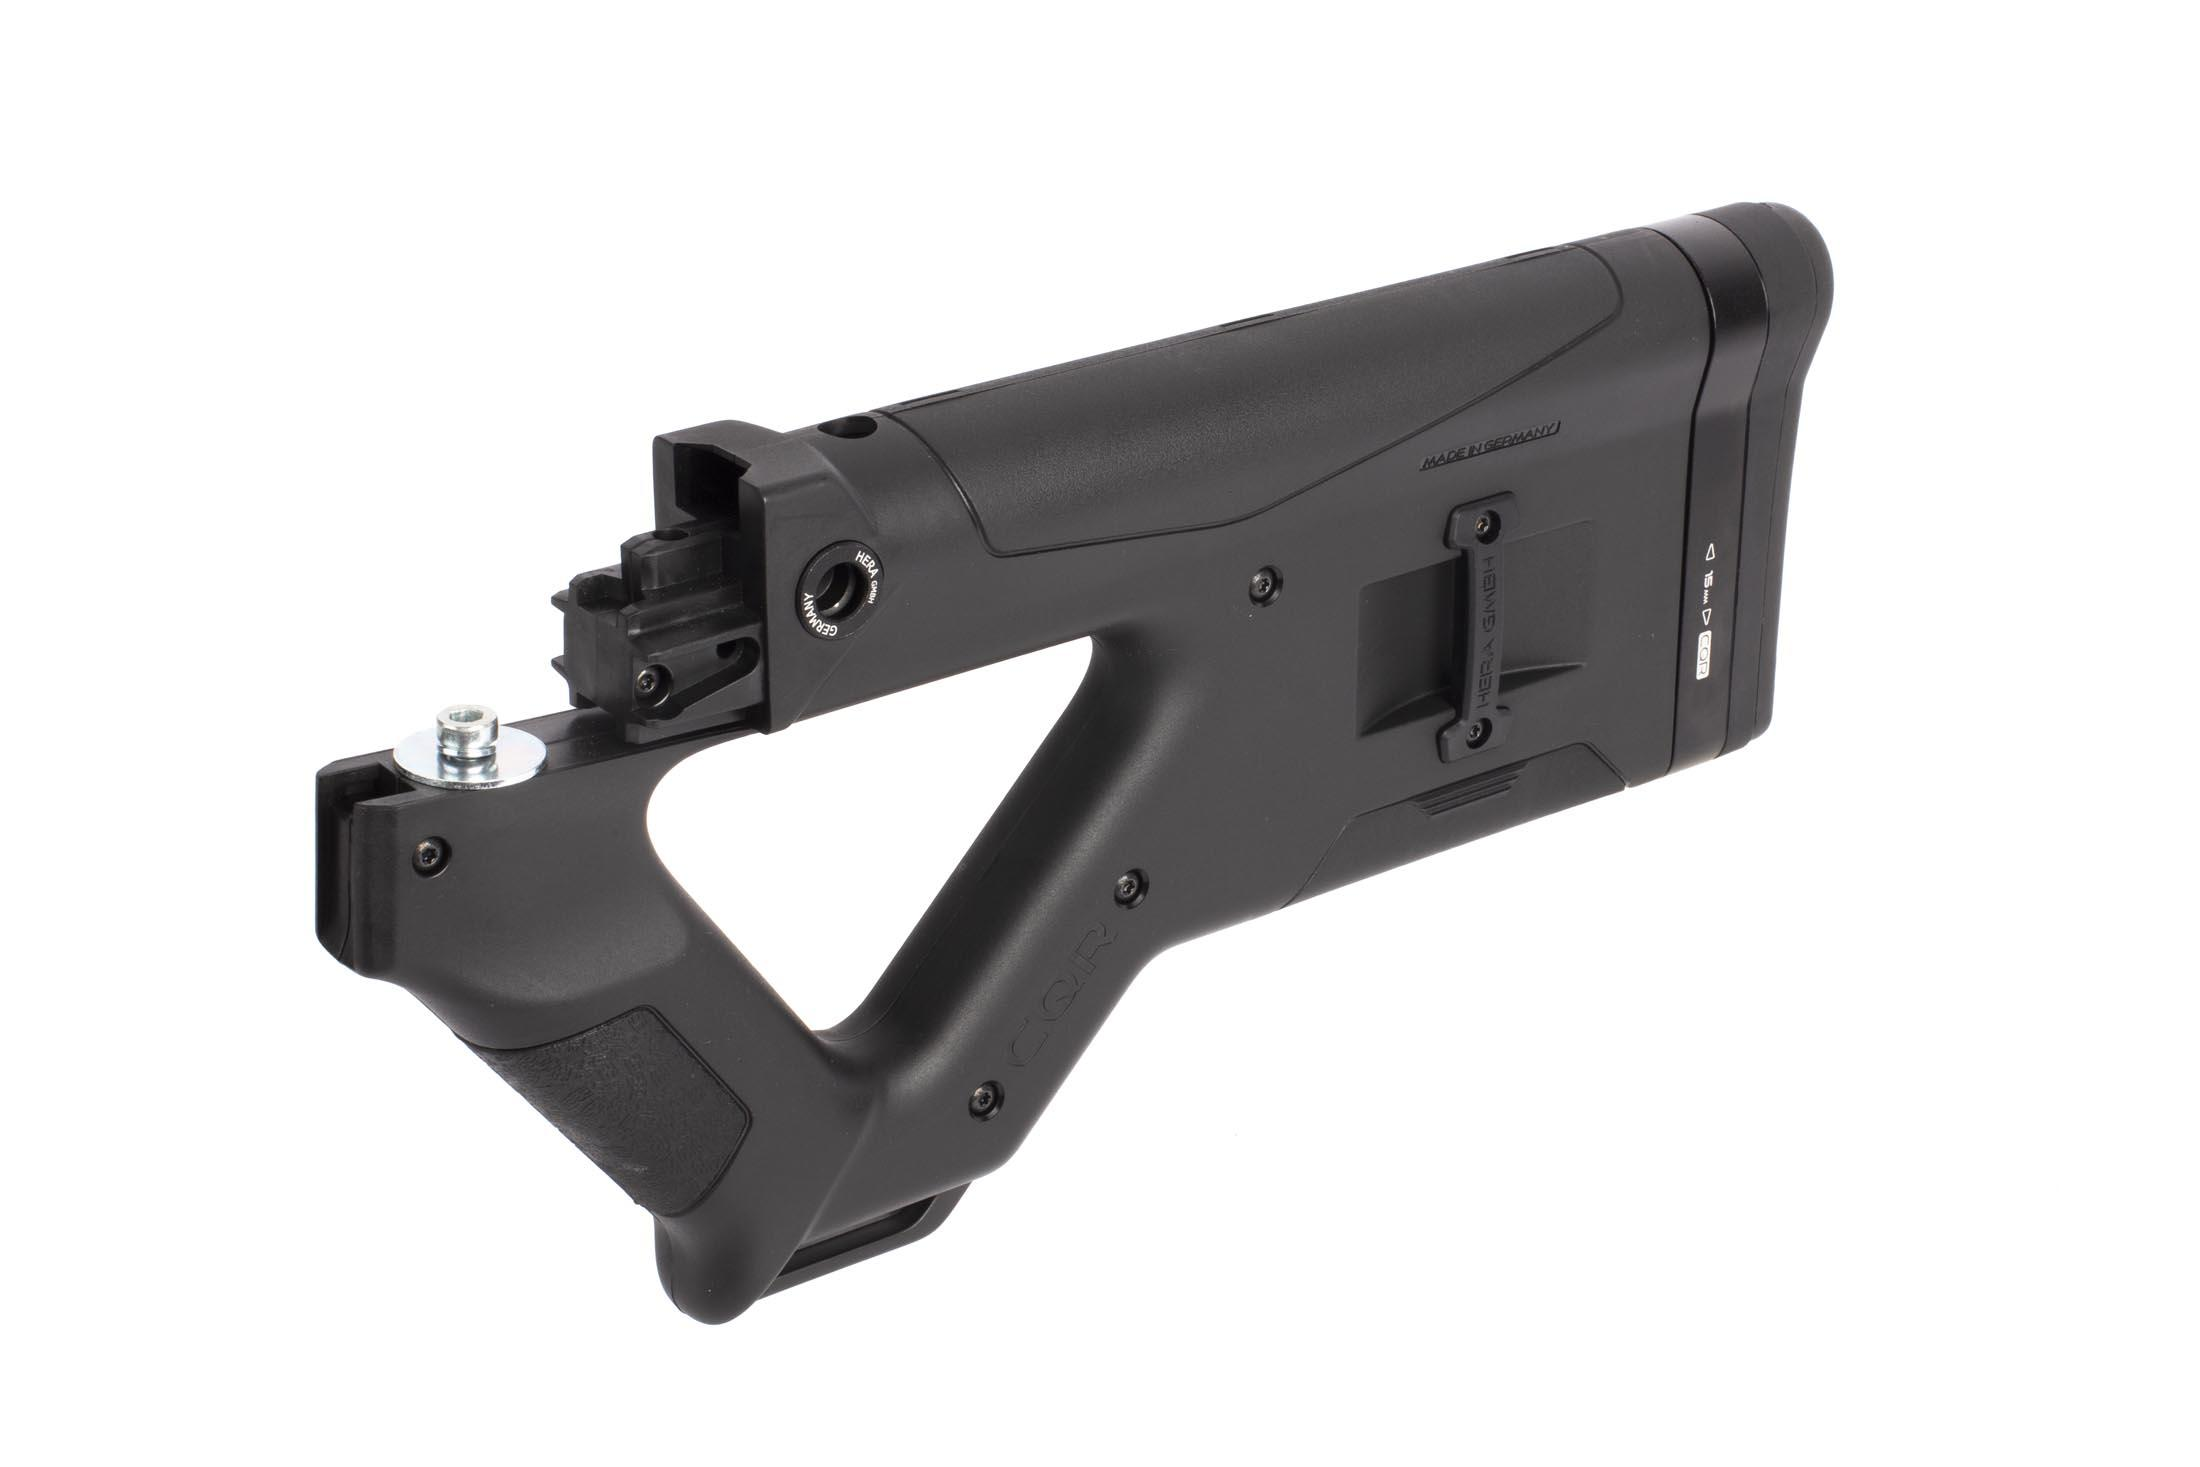 Hera Arms AK-47 CQR stock in sleek black has an integral pistol grip with comfortable raked angle for enhanced weapon control